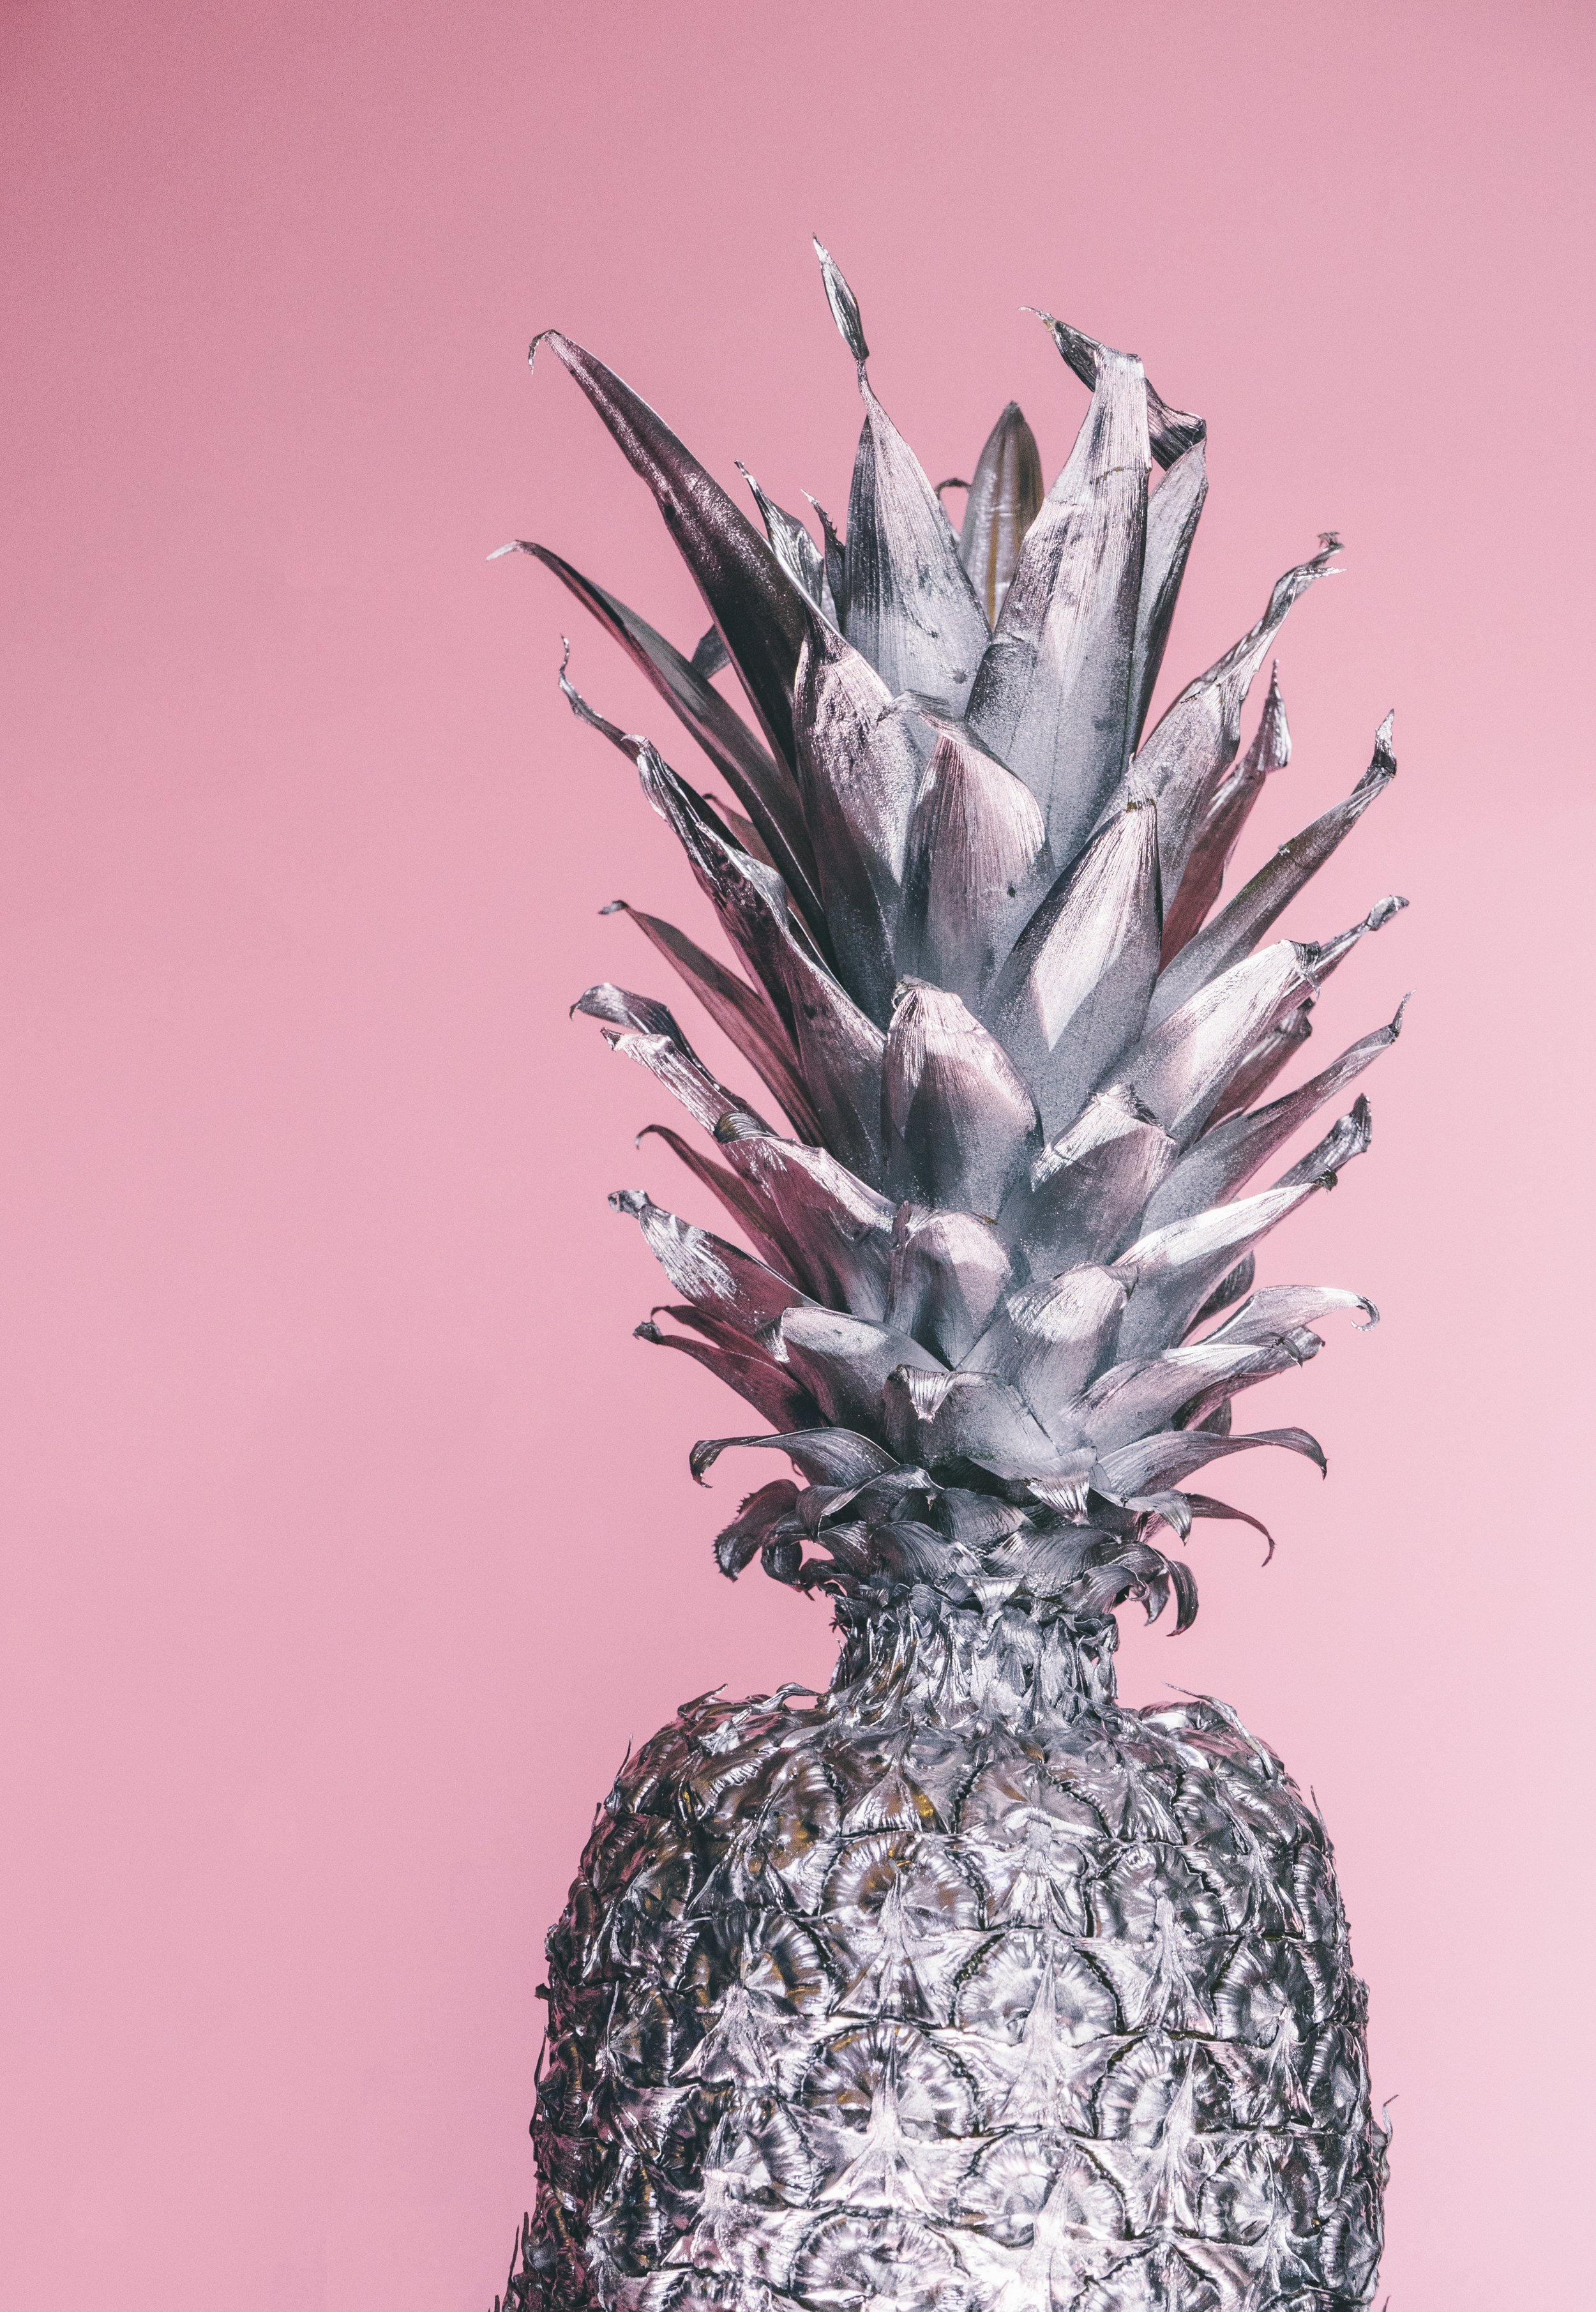 pineapple-supply-co-86279-unsplash.jpg